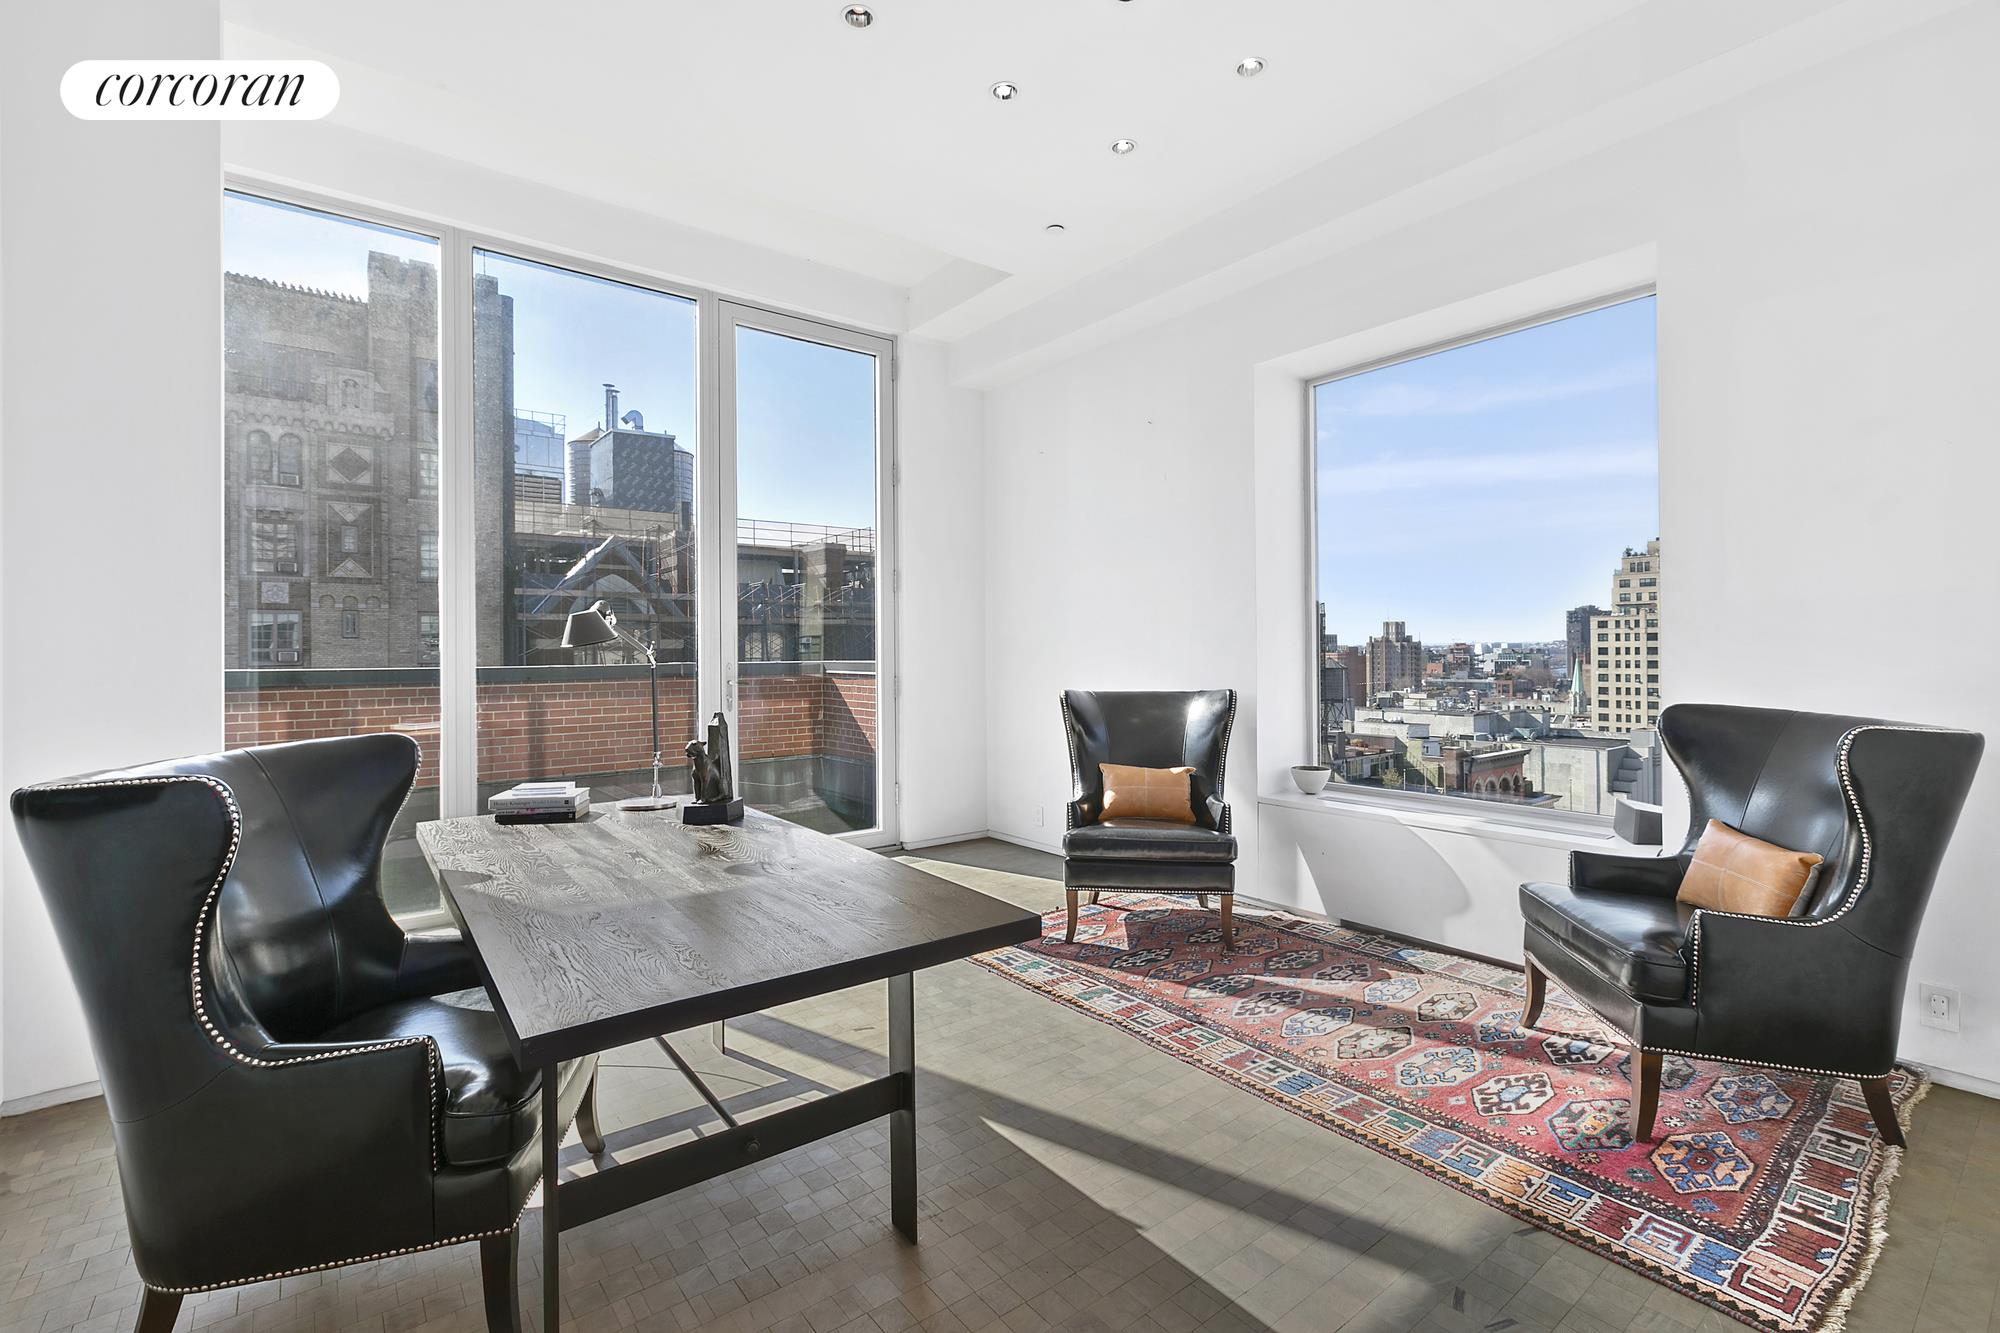 213 West 23rd Street, PH, living room